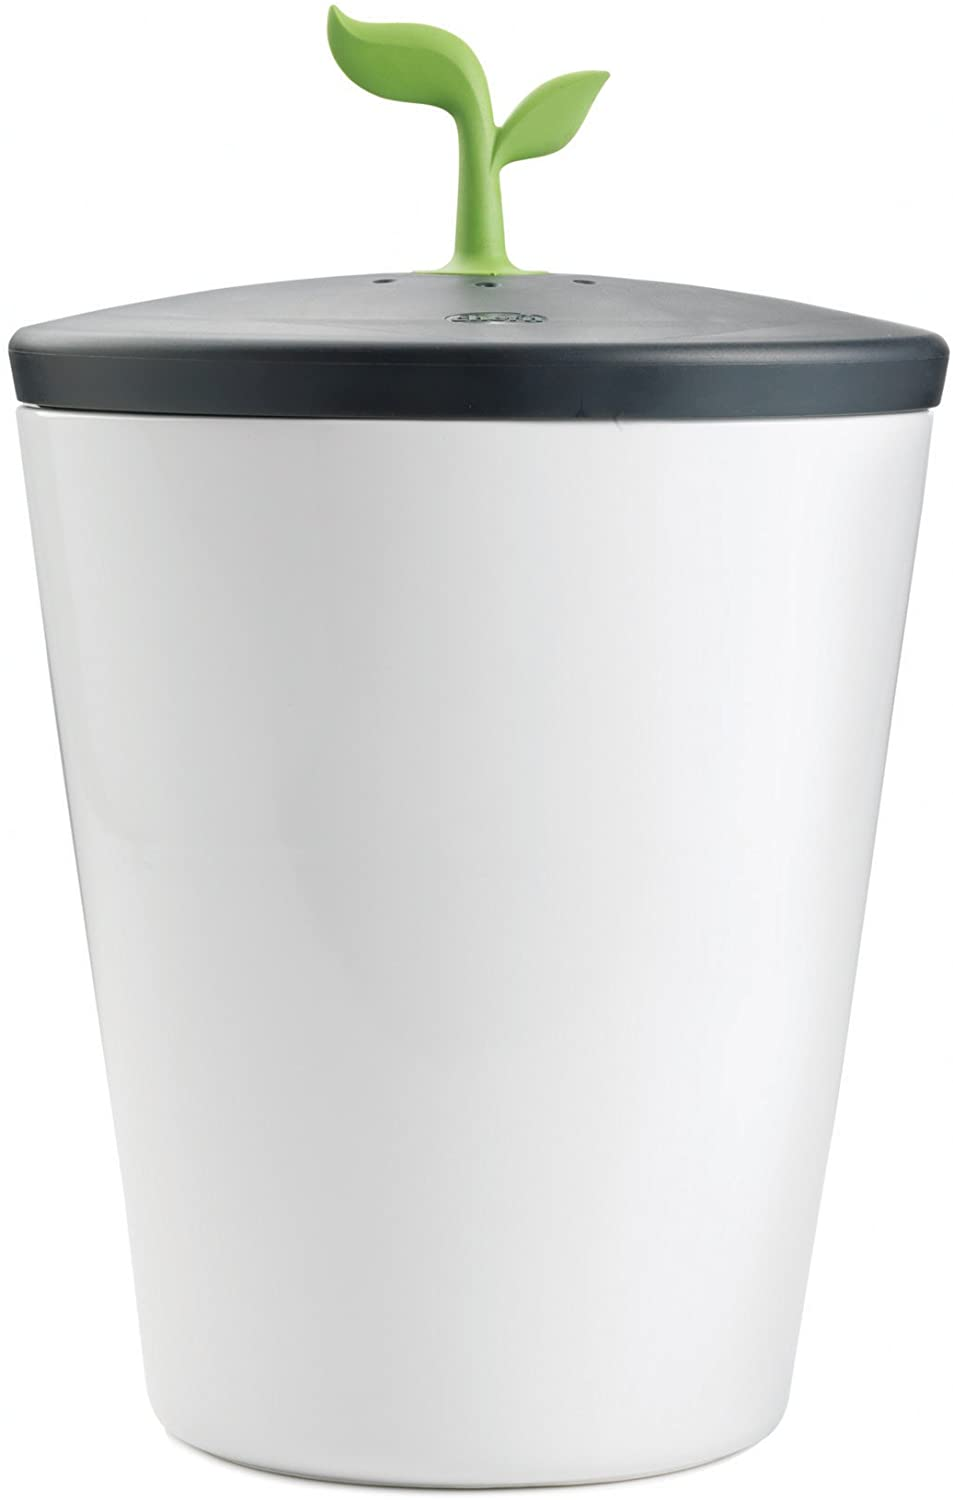 Chef'n 401-420-120 EcoCrock Counter Compost Bin